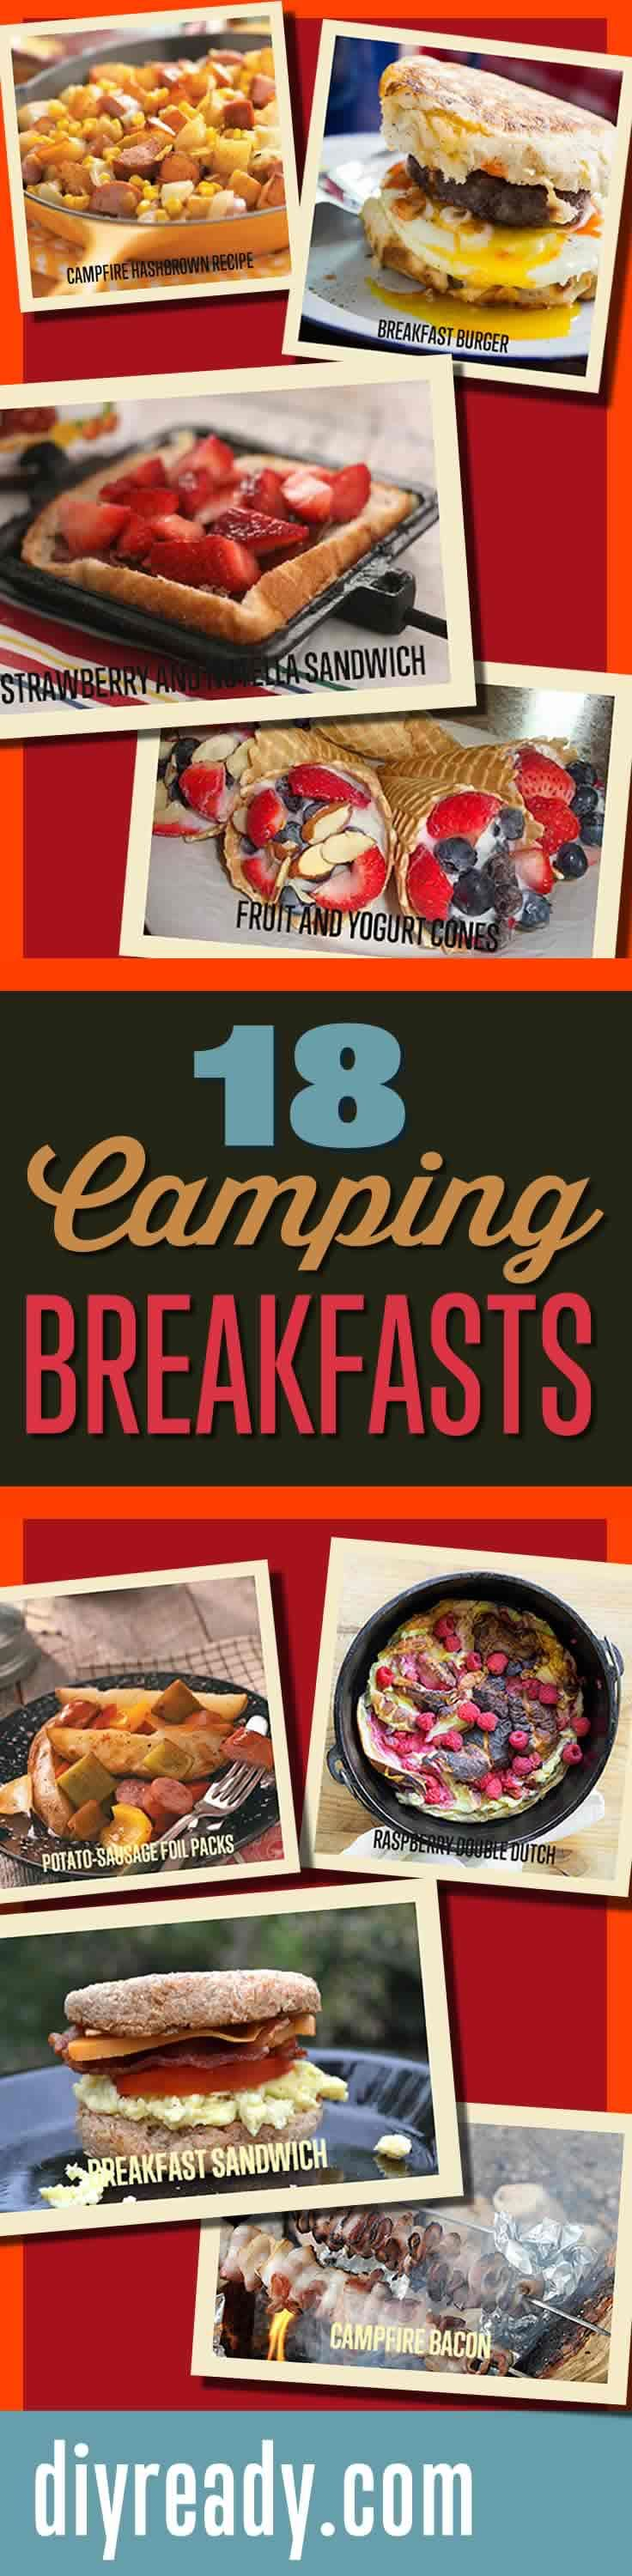 Mouthwatering Recipes You Must Try On Your Next Camping Trip   DIY Camping Breakfast Recipes and Easy Breakfast Ideas for Campfire Cooking http://diyready.com/18-mouthwatering-breakfast-recipes-to-try-on-your-next-camping-trip/